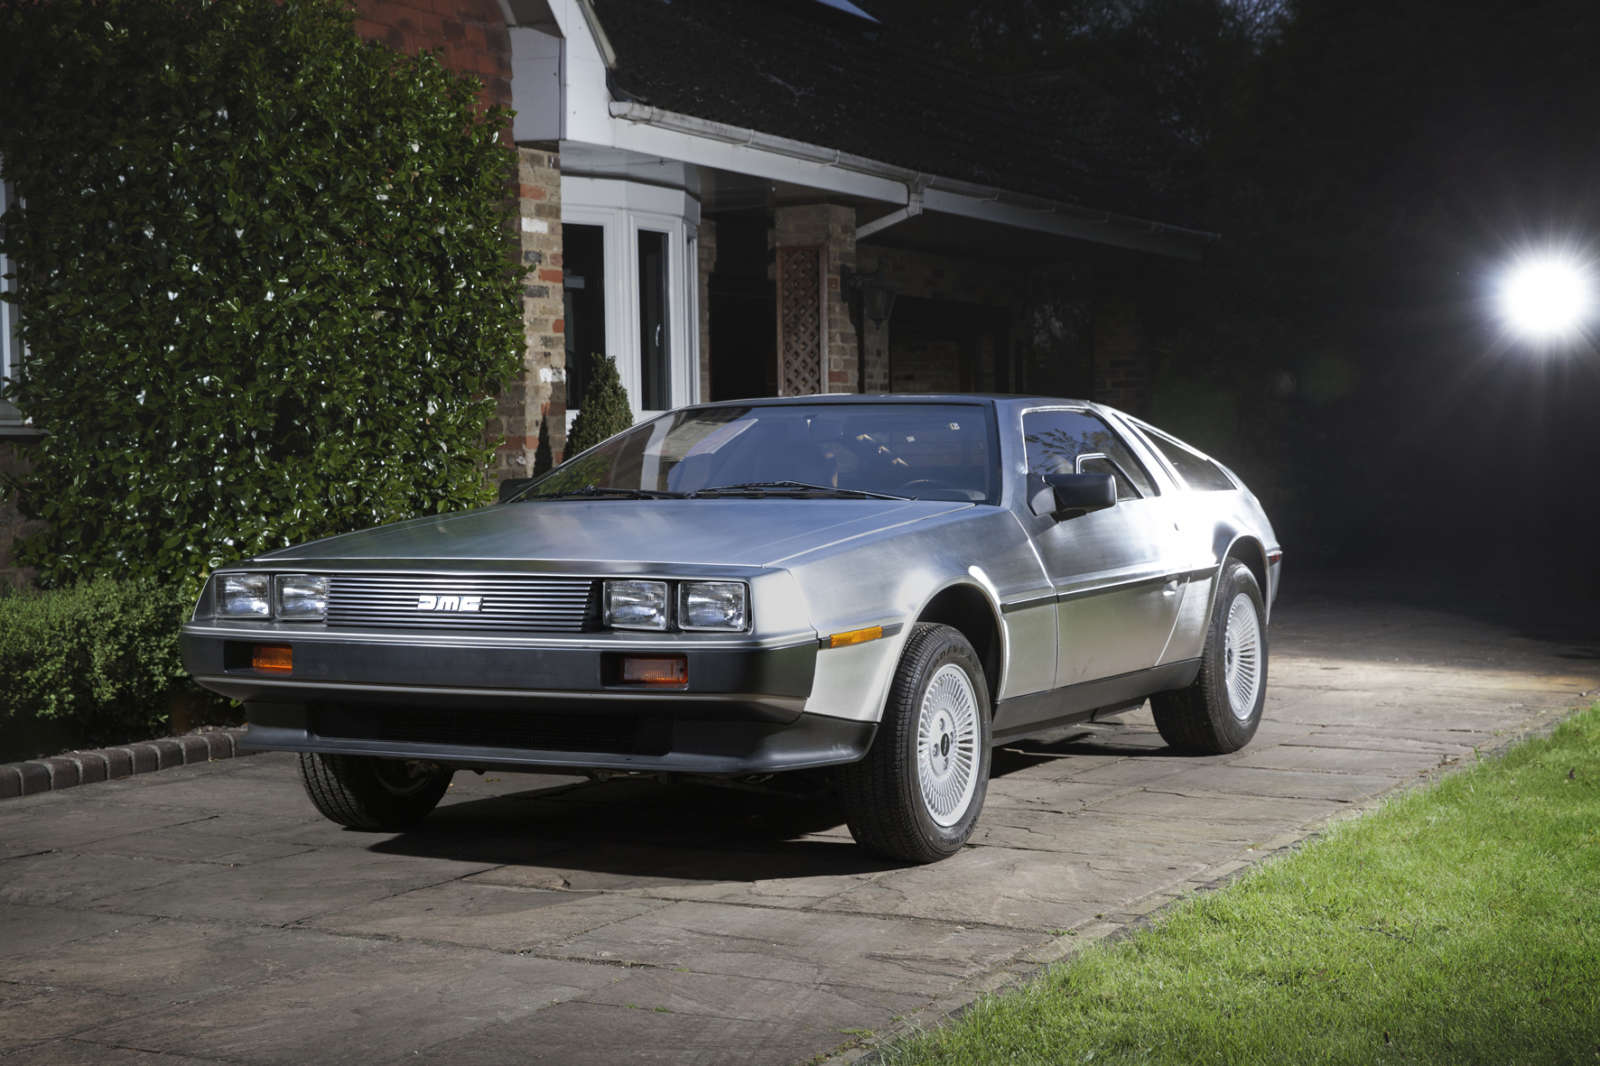 unregistered 1981 delorean with just 24 delivery miles comes to auction motoroids. Black Bedroom Furniture Sets. Home Design Ideas